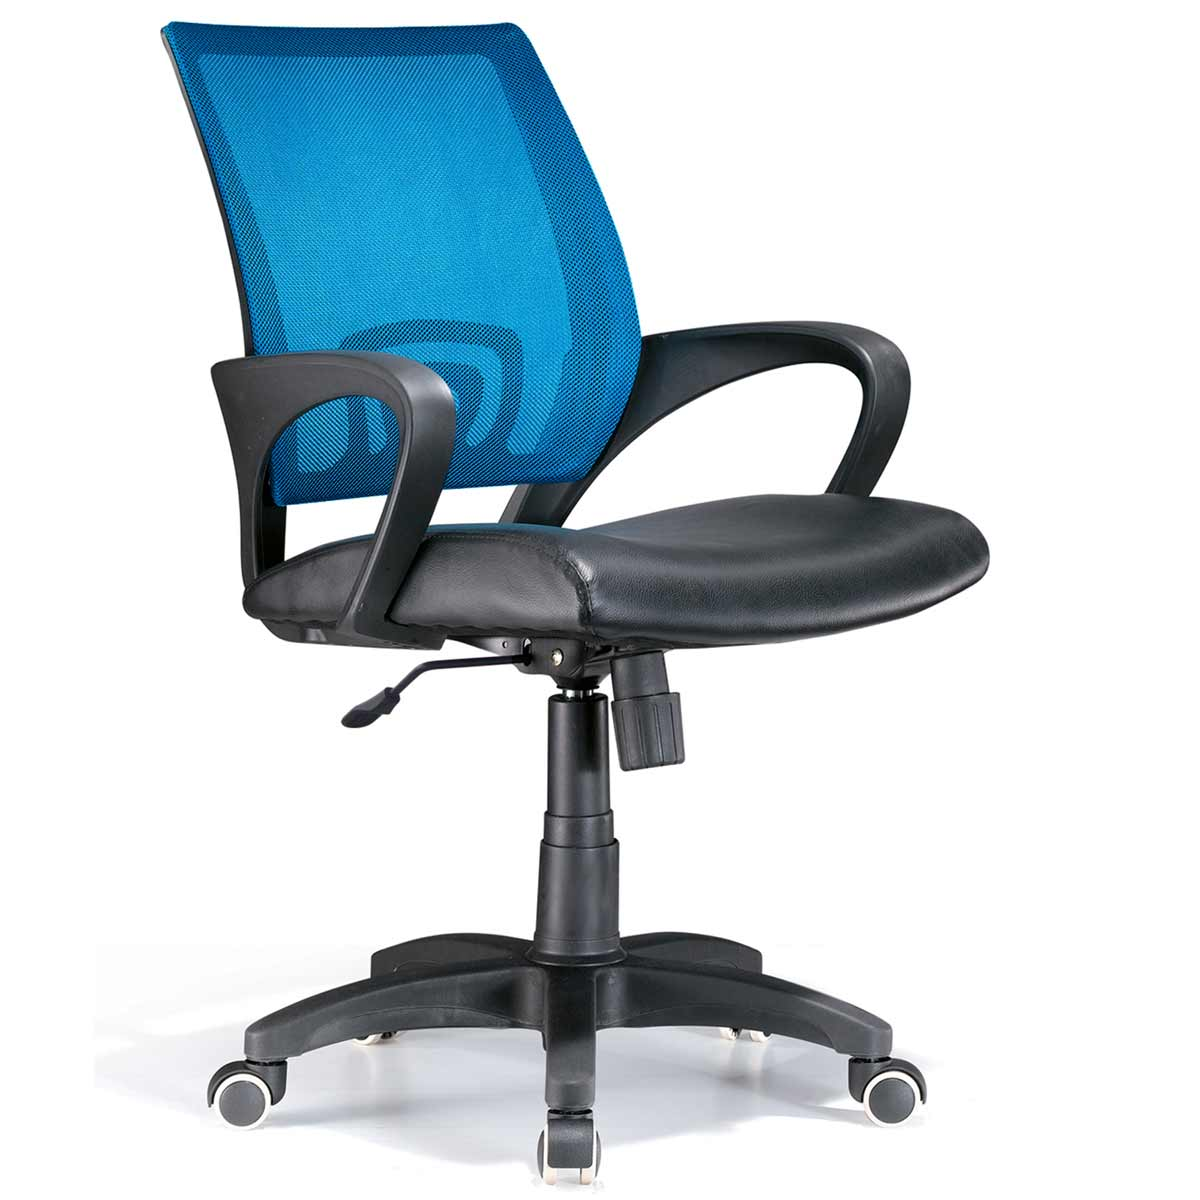 colorful desk chairs portable massage chair reviews blue office as nice interiors